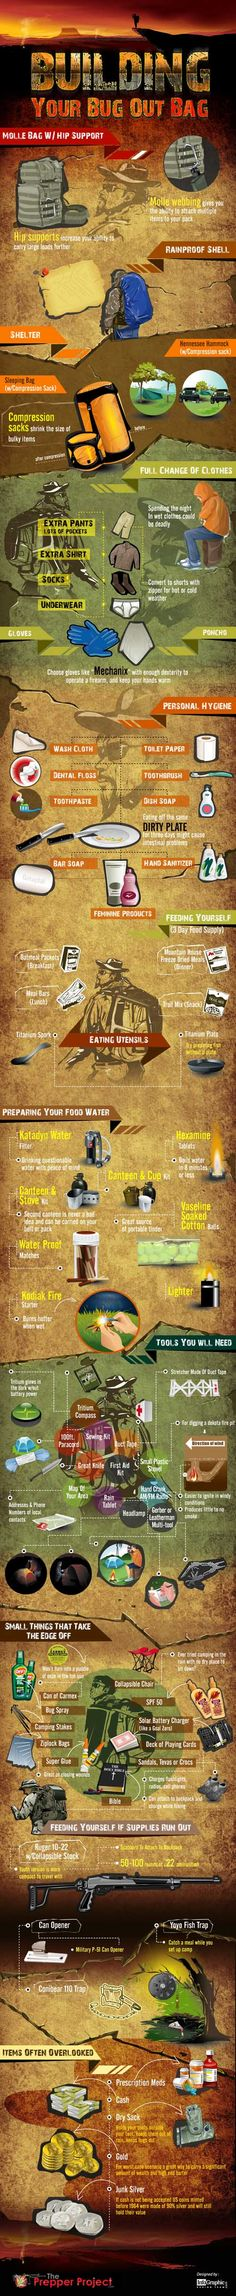 Building Your Bugout Bag: The Complete Infographic Checklist The Prepper Project April 30th, 2013 / all nice but not the gun